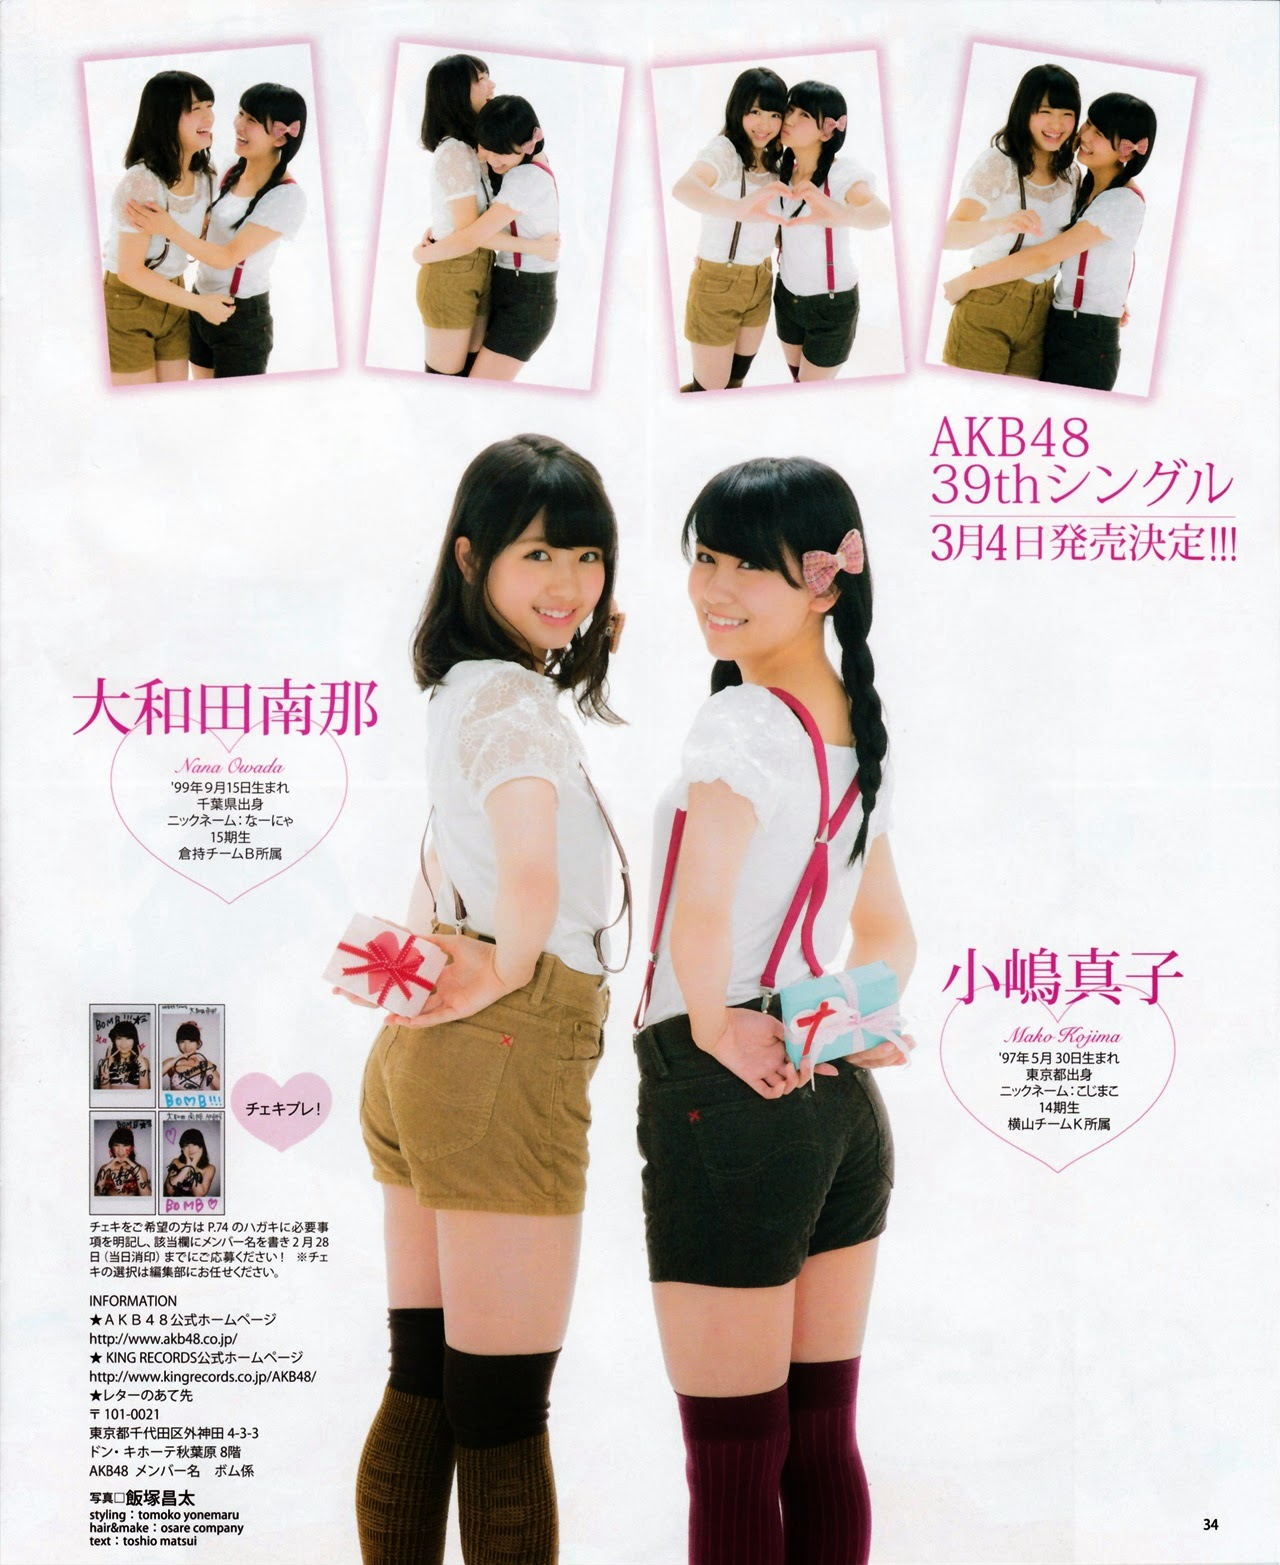 Owada Nana and Mako Kojima